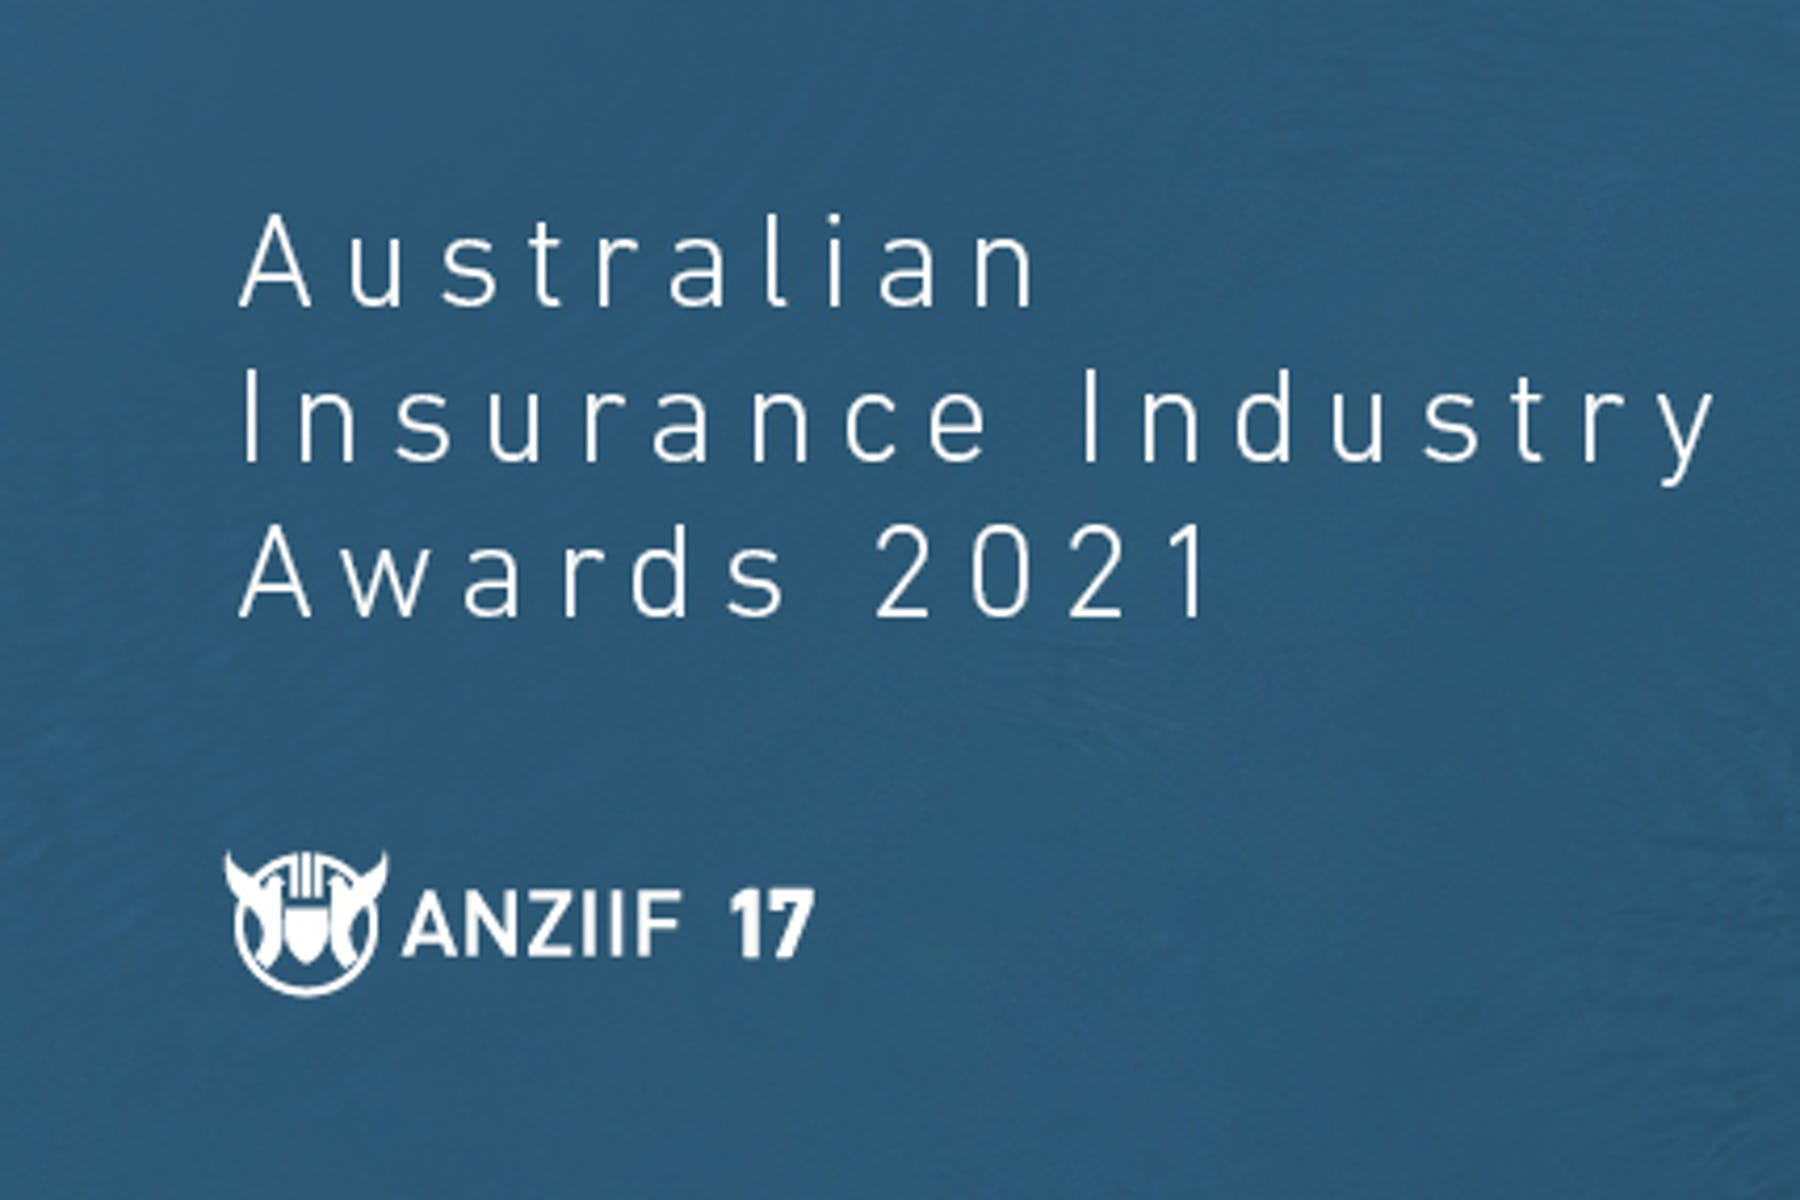 Banner with text stating Australian Insurance Industry Awards 2021 ANZIIF 17